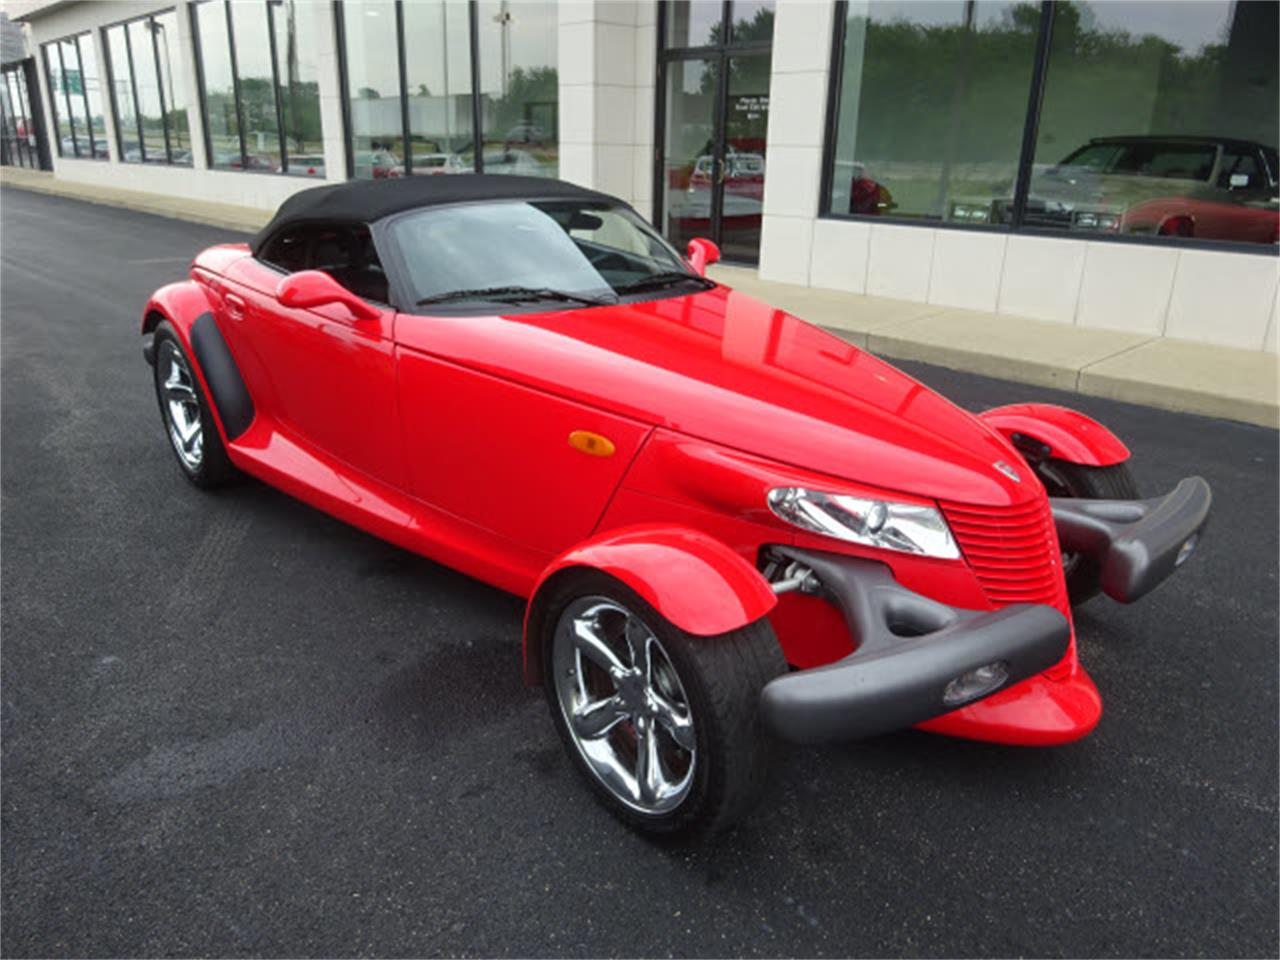 Large Picture of '99 Prowler located in Marysville Ohio - $29,999.00 Offered by Nelson Automotive, Ltd. - JPAP